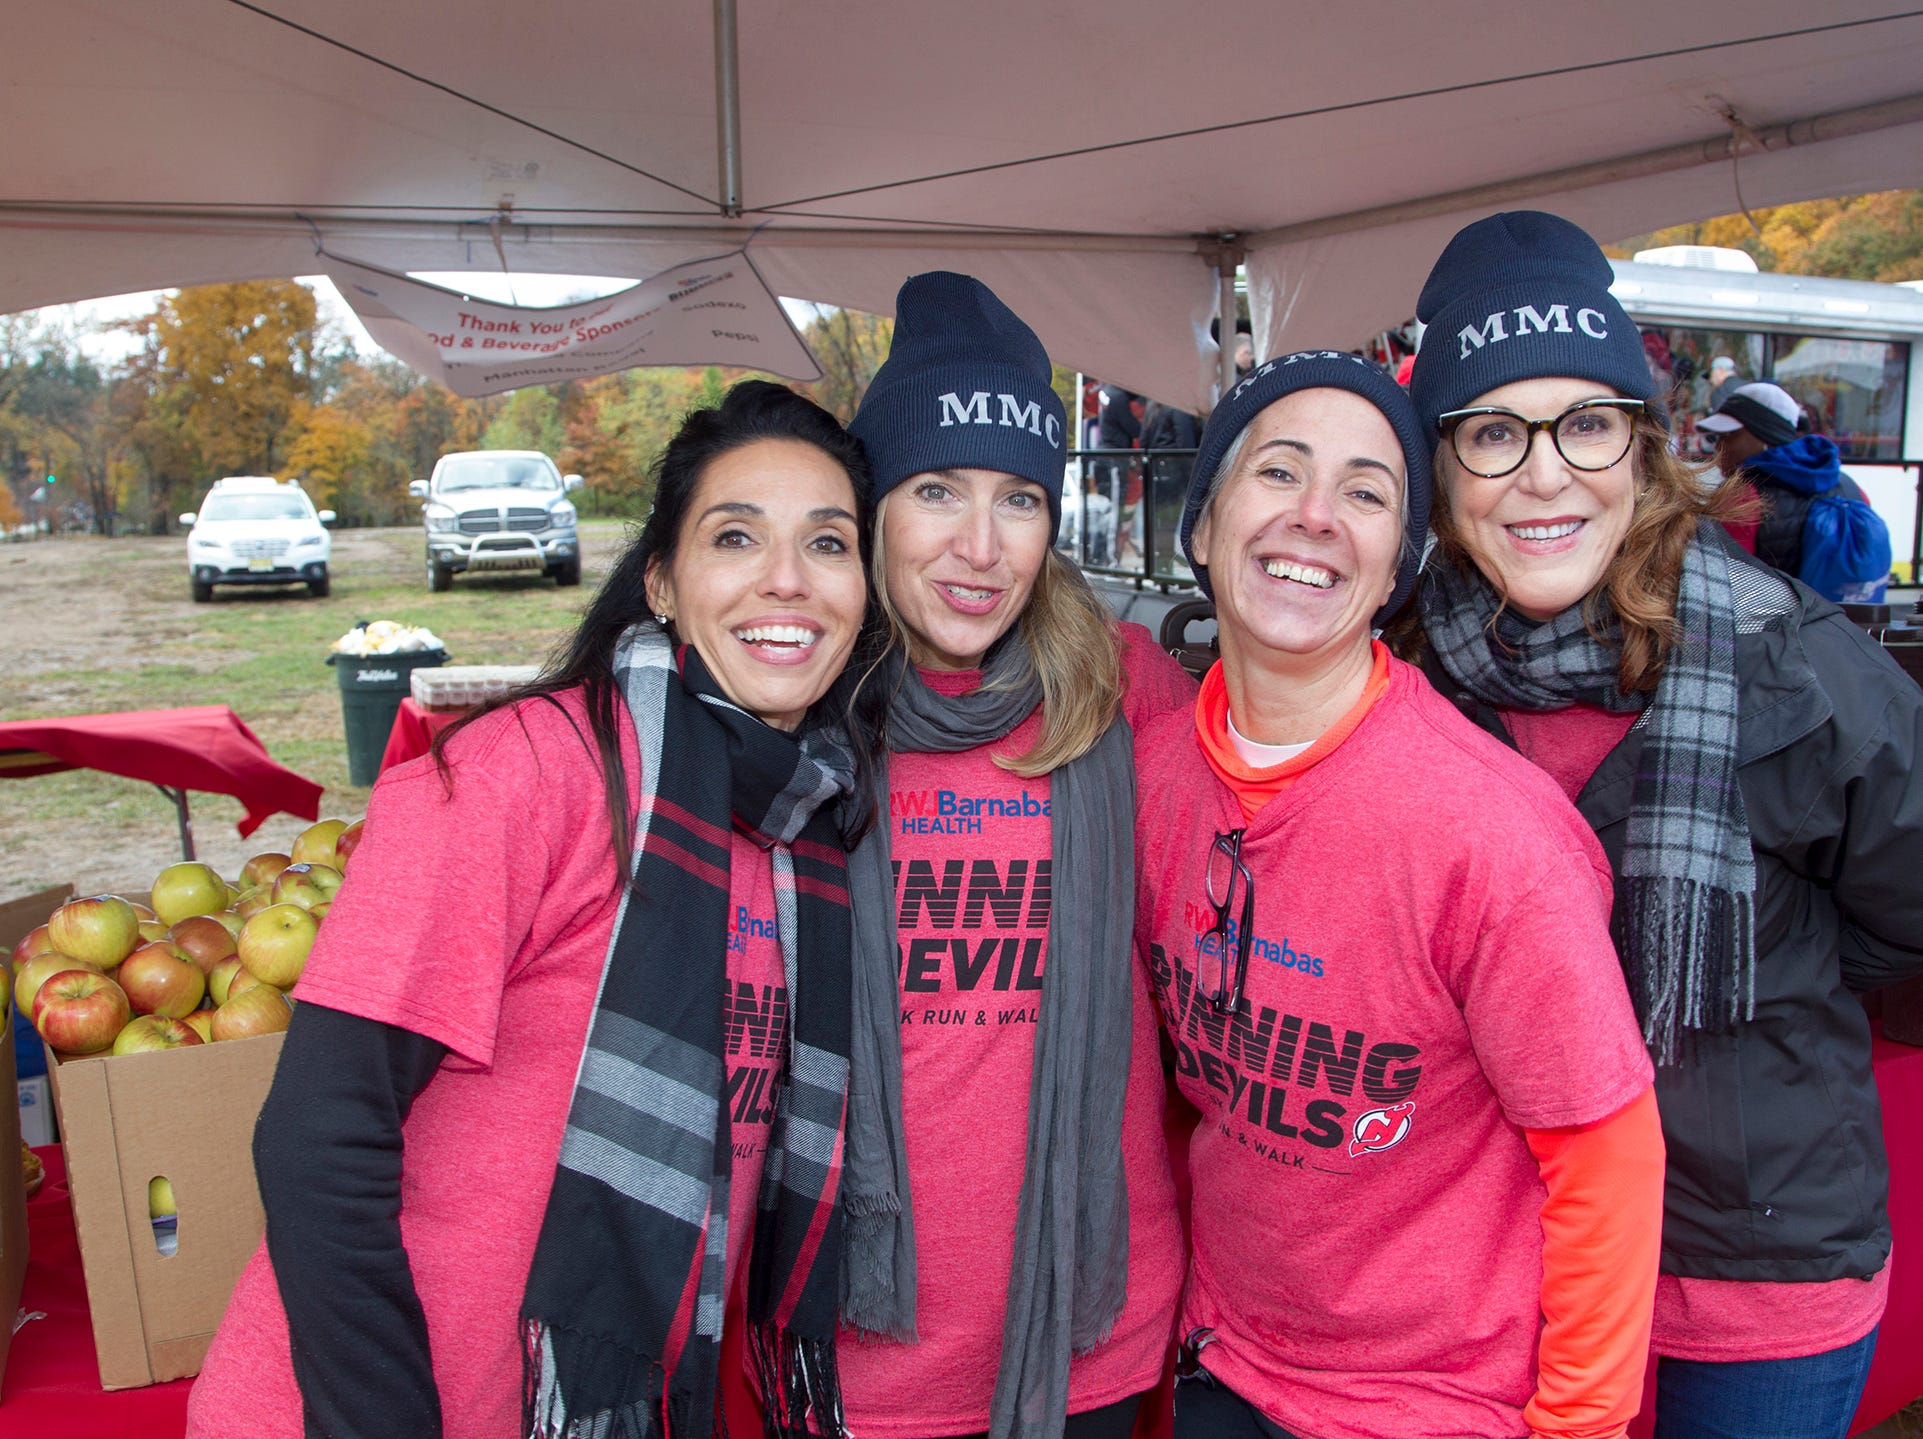 Evelyn, Kelly, Susan, Robin. RWJBarnabas Health Running with the Devils 5K Run and Family Fun Walk at South Mountain Recreation in West Orange. 10/03/2018